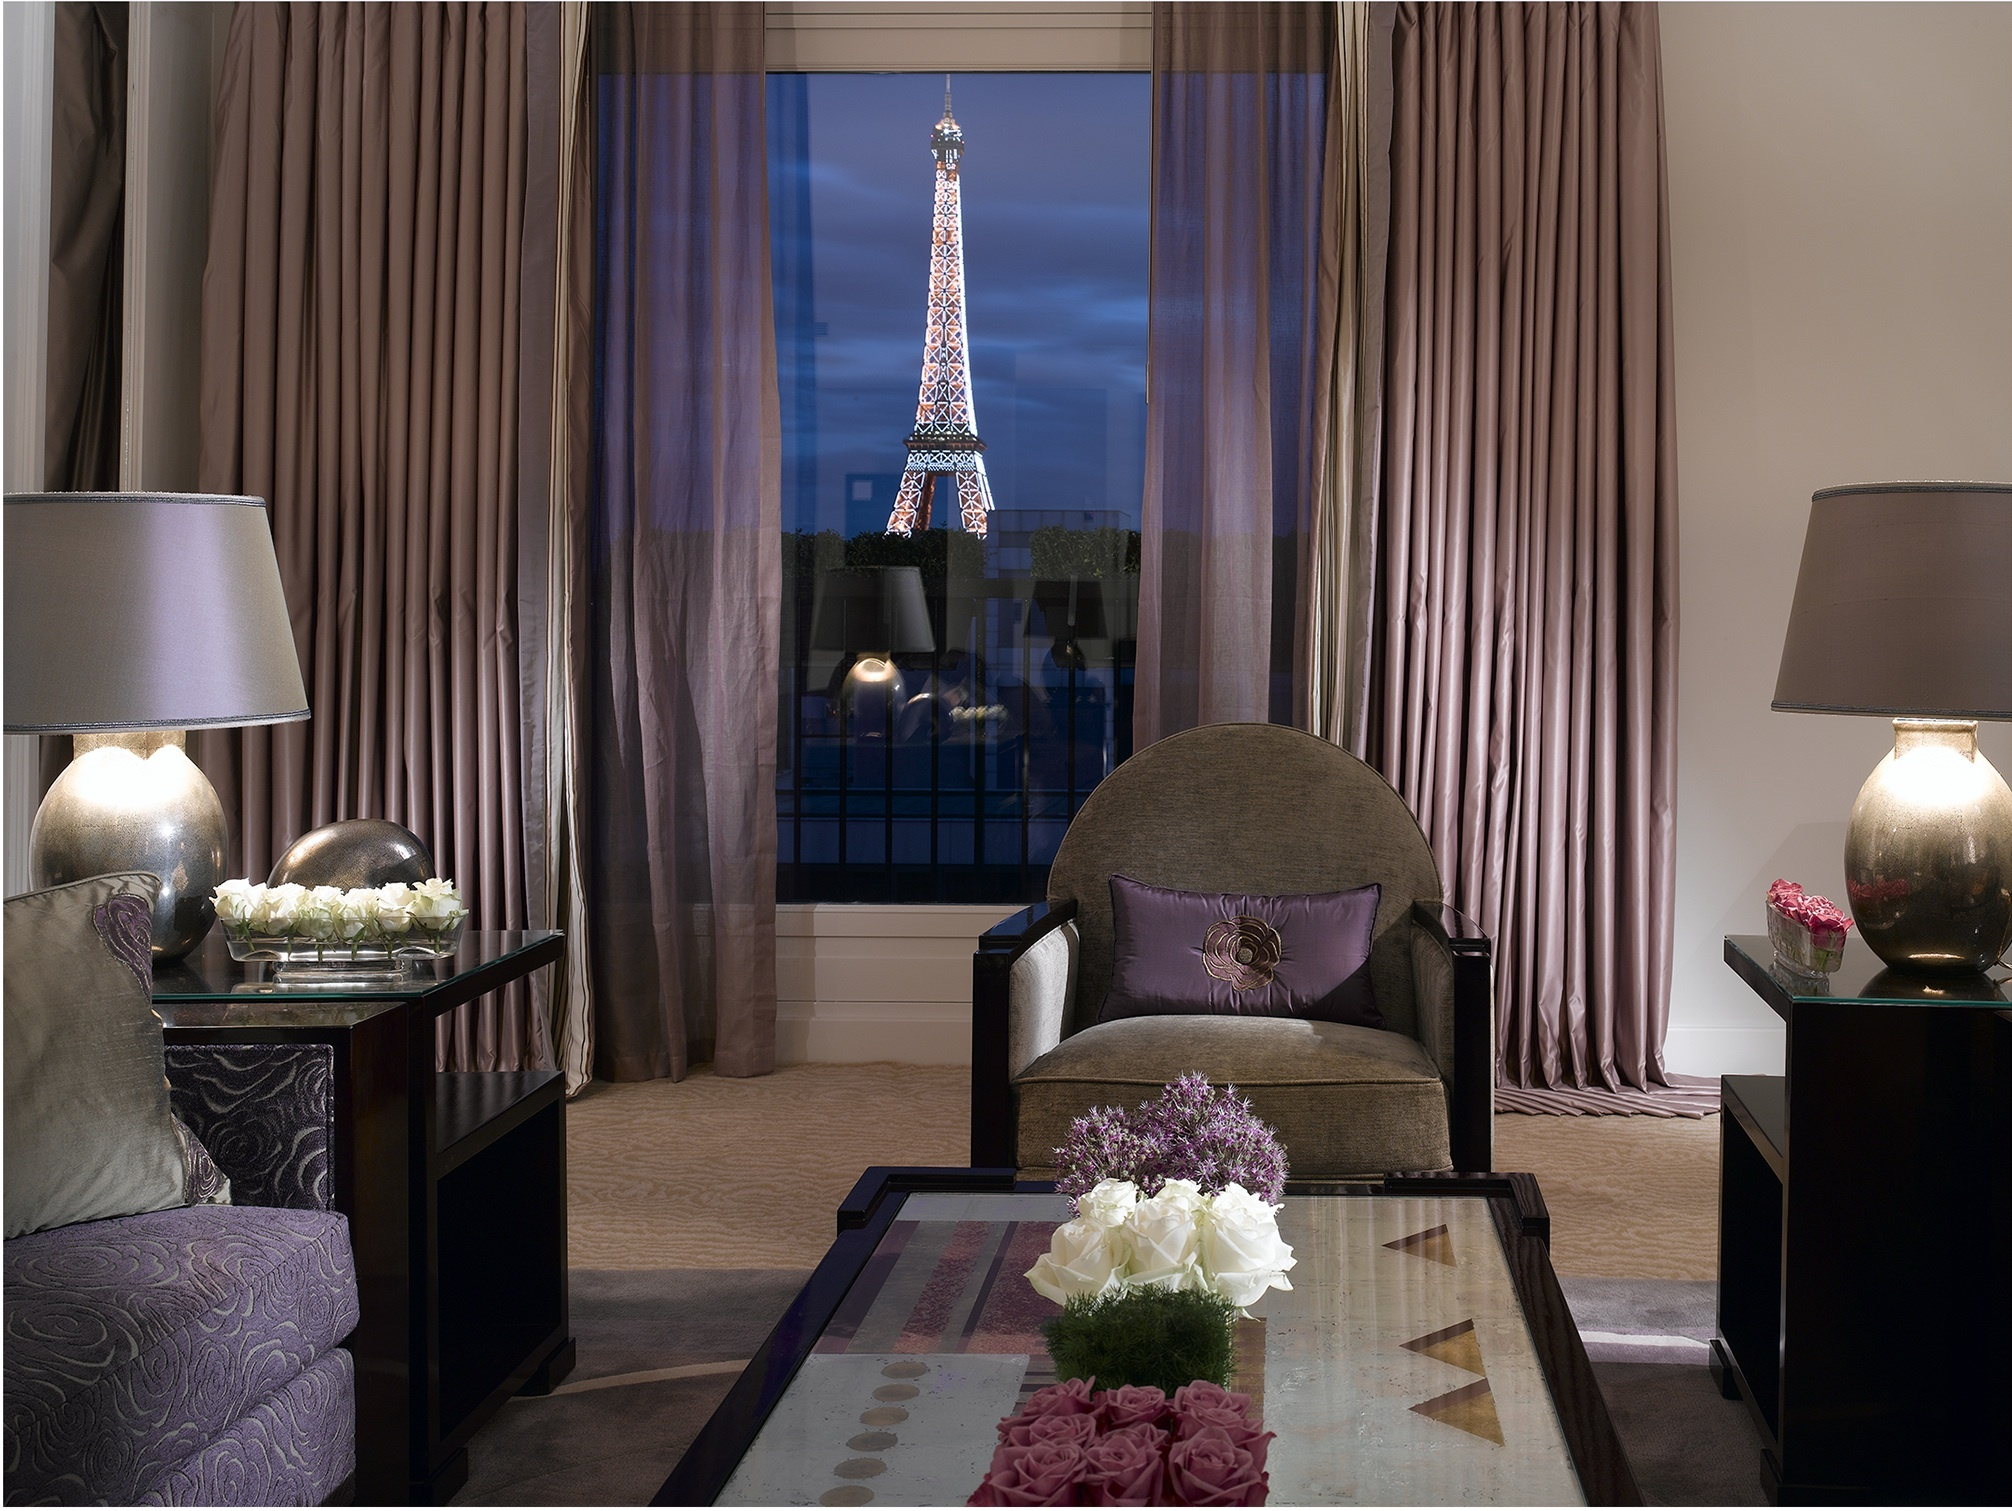 The best hotel rooms in Paris